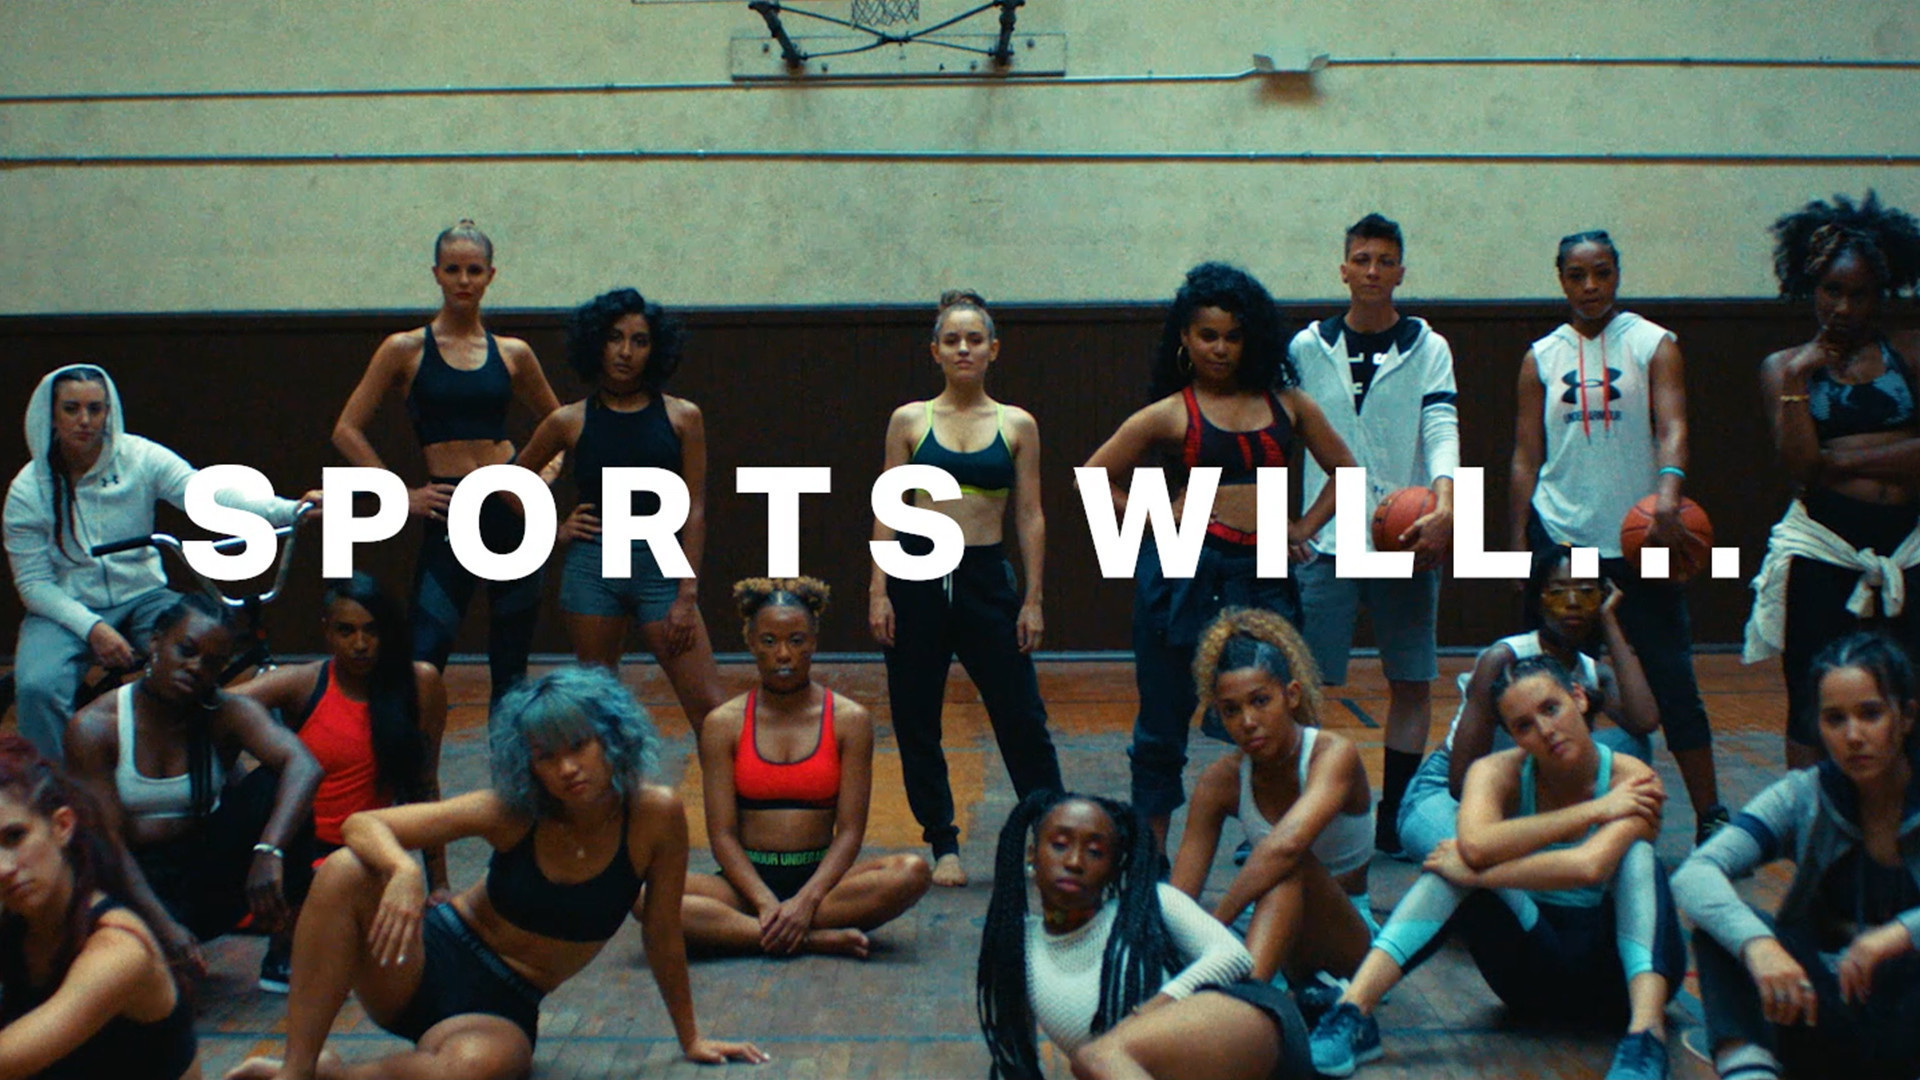 Under Armour Launches We Will Campaign